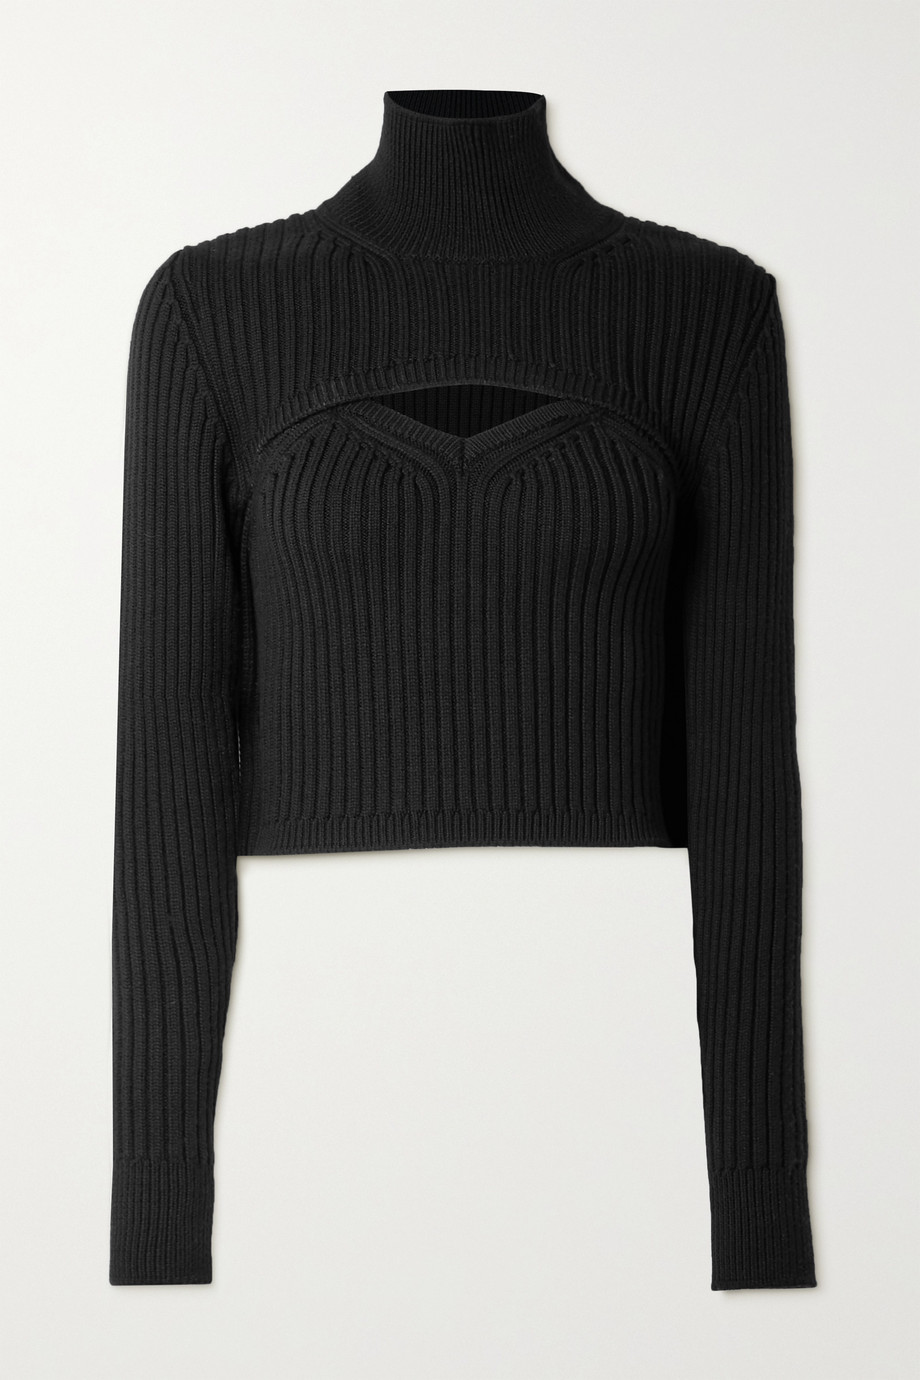 Rosie Assoulin Thousand in One Ways convertible cropped ribbed wool turtleneck sweater